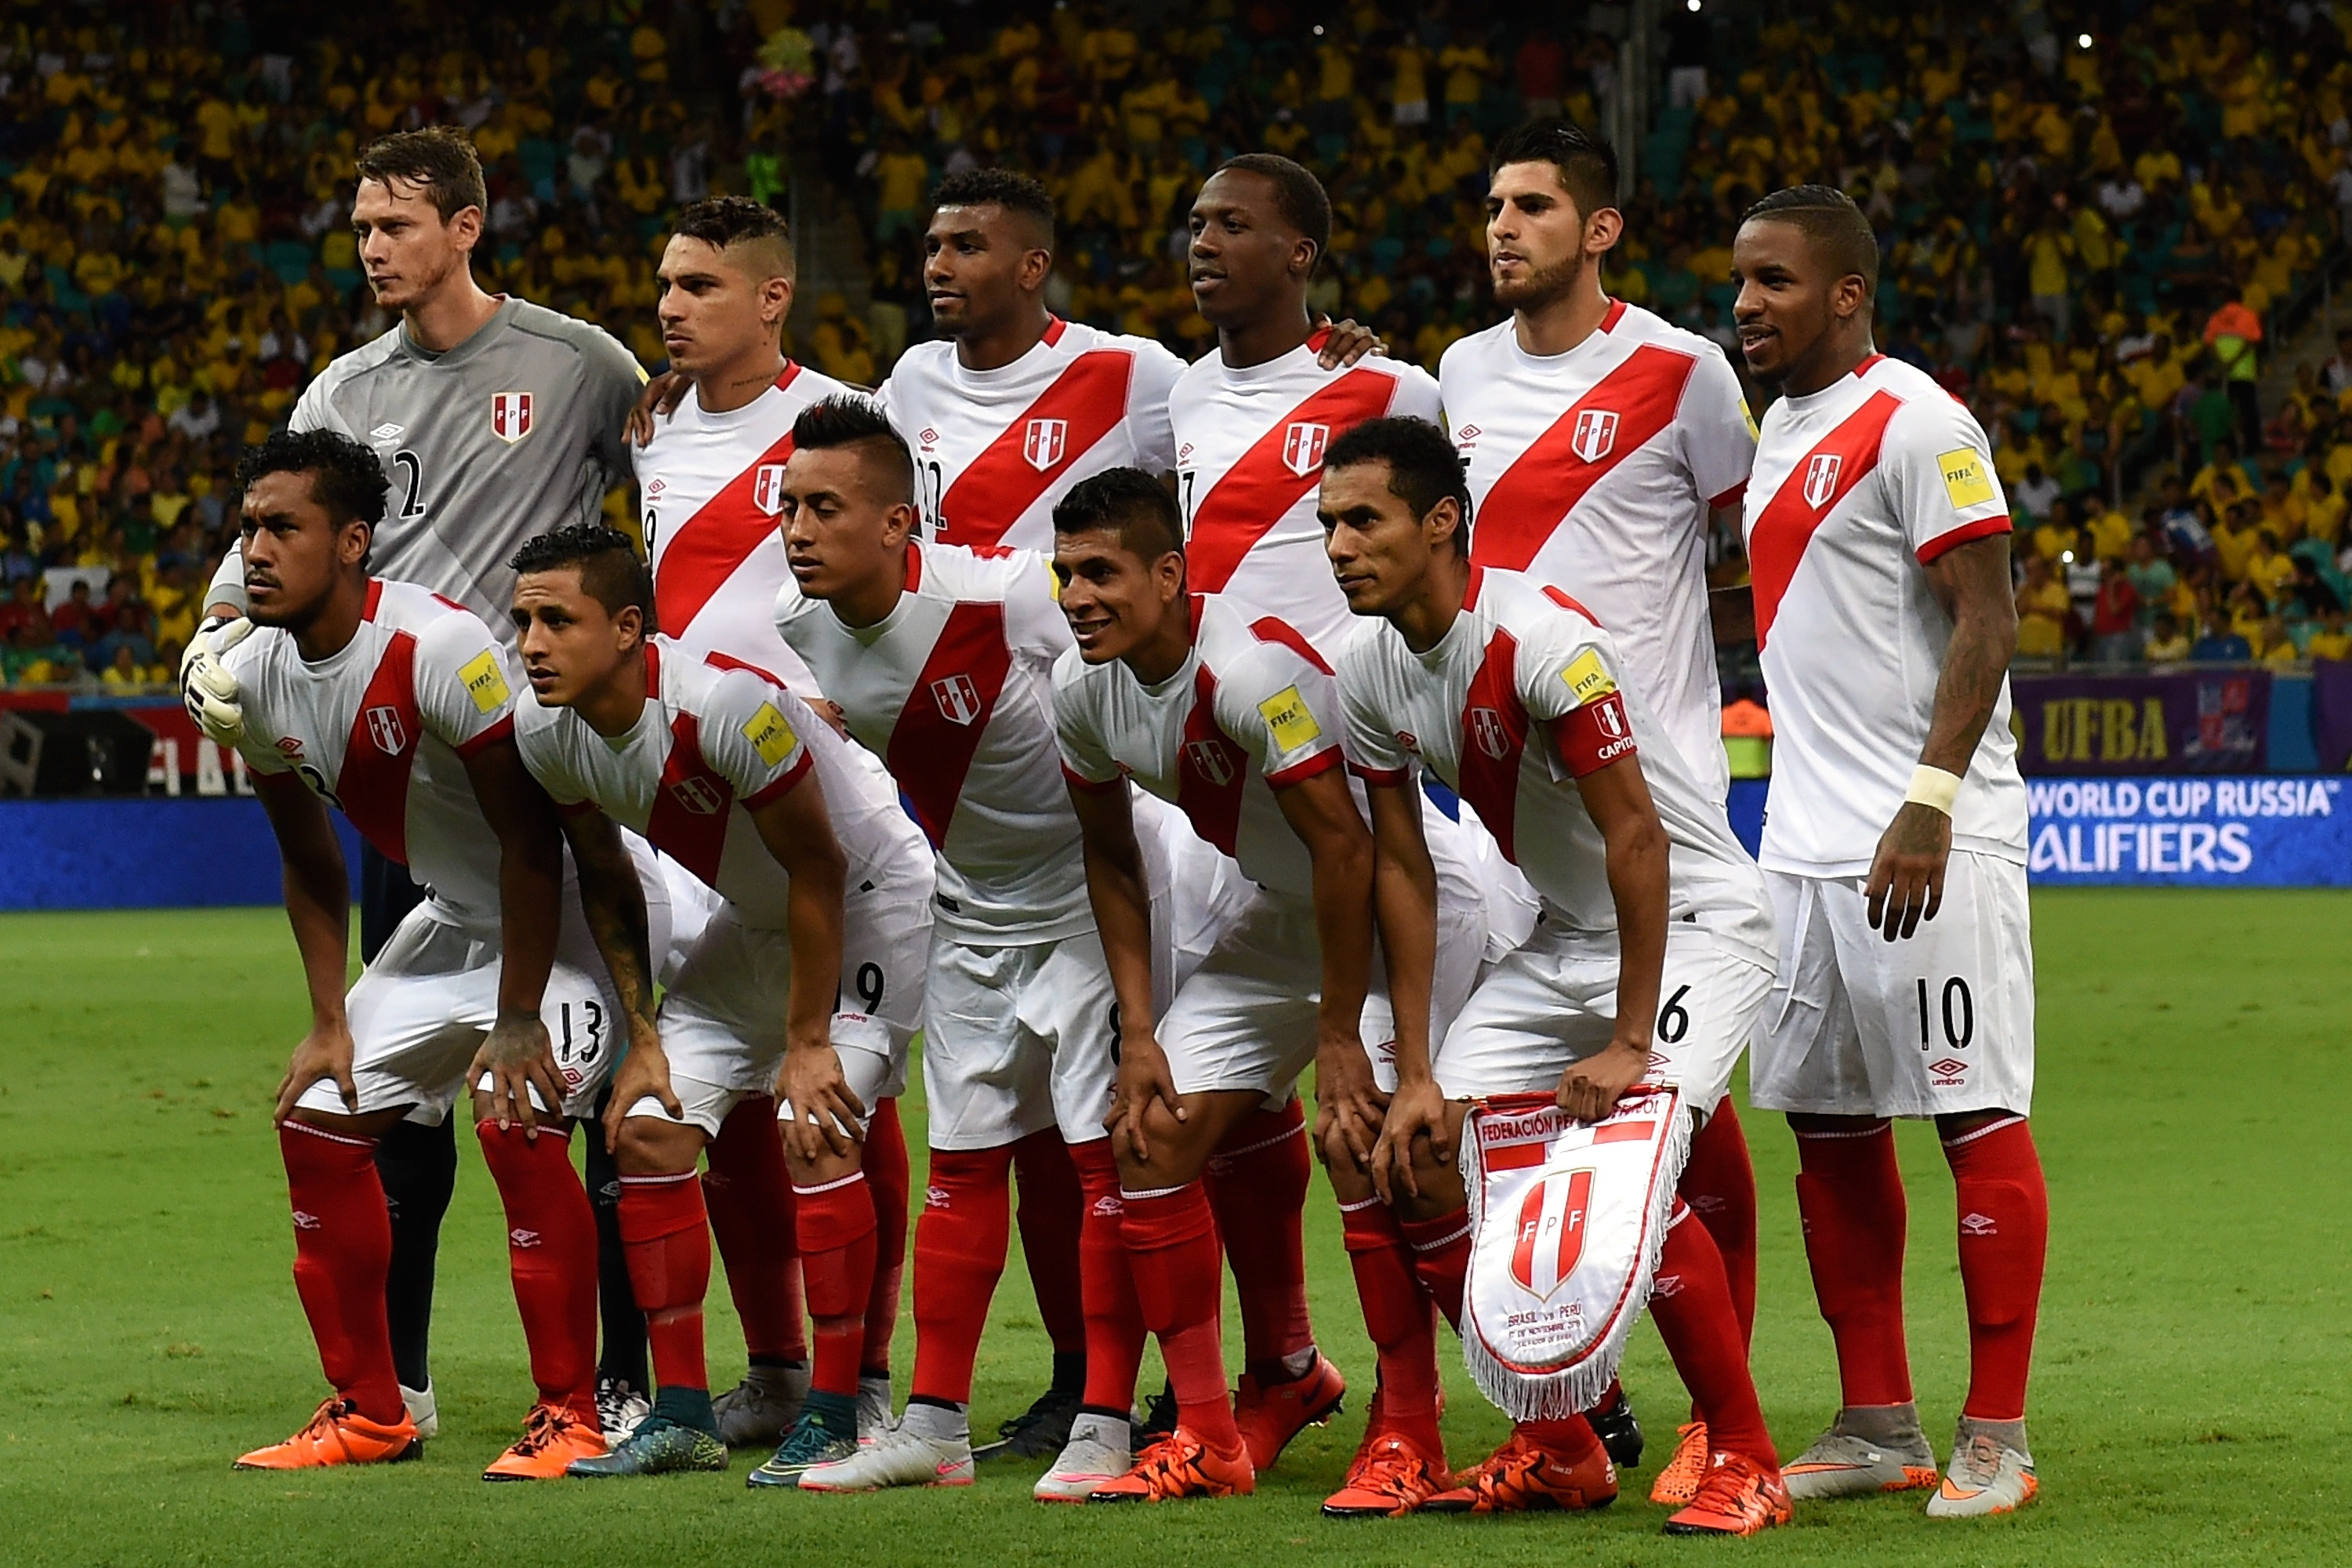 Remembering Daniel Peredo, the Peruvian Commentator Who'll Be in Our Hearts This World Cup